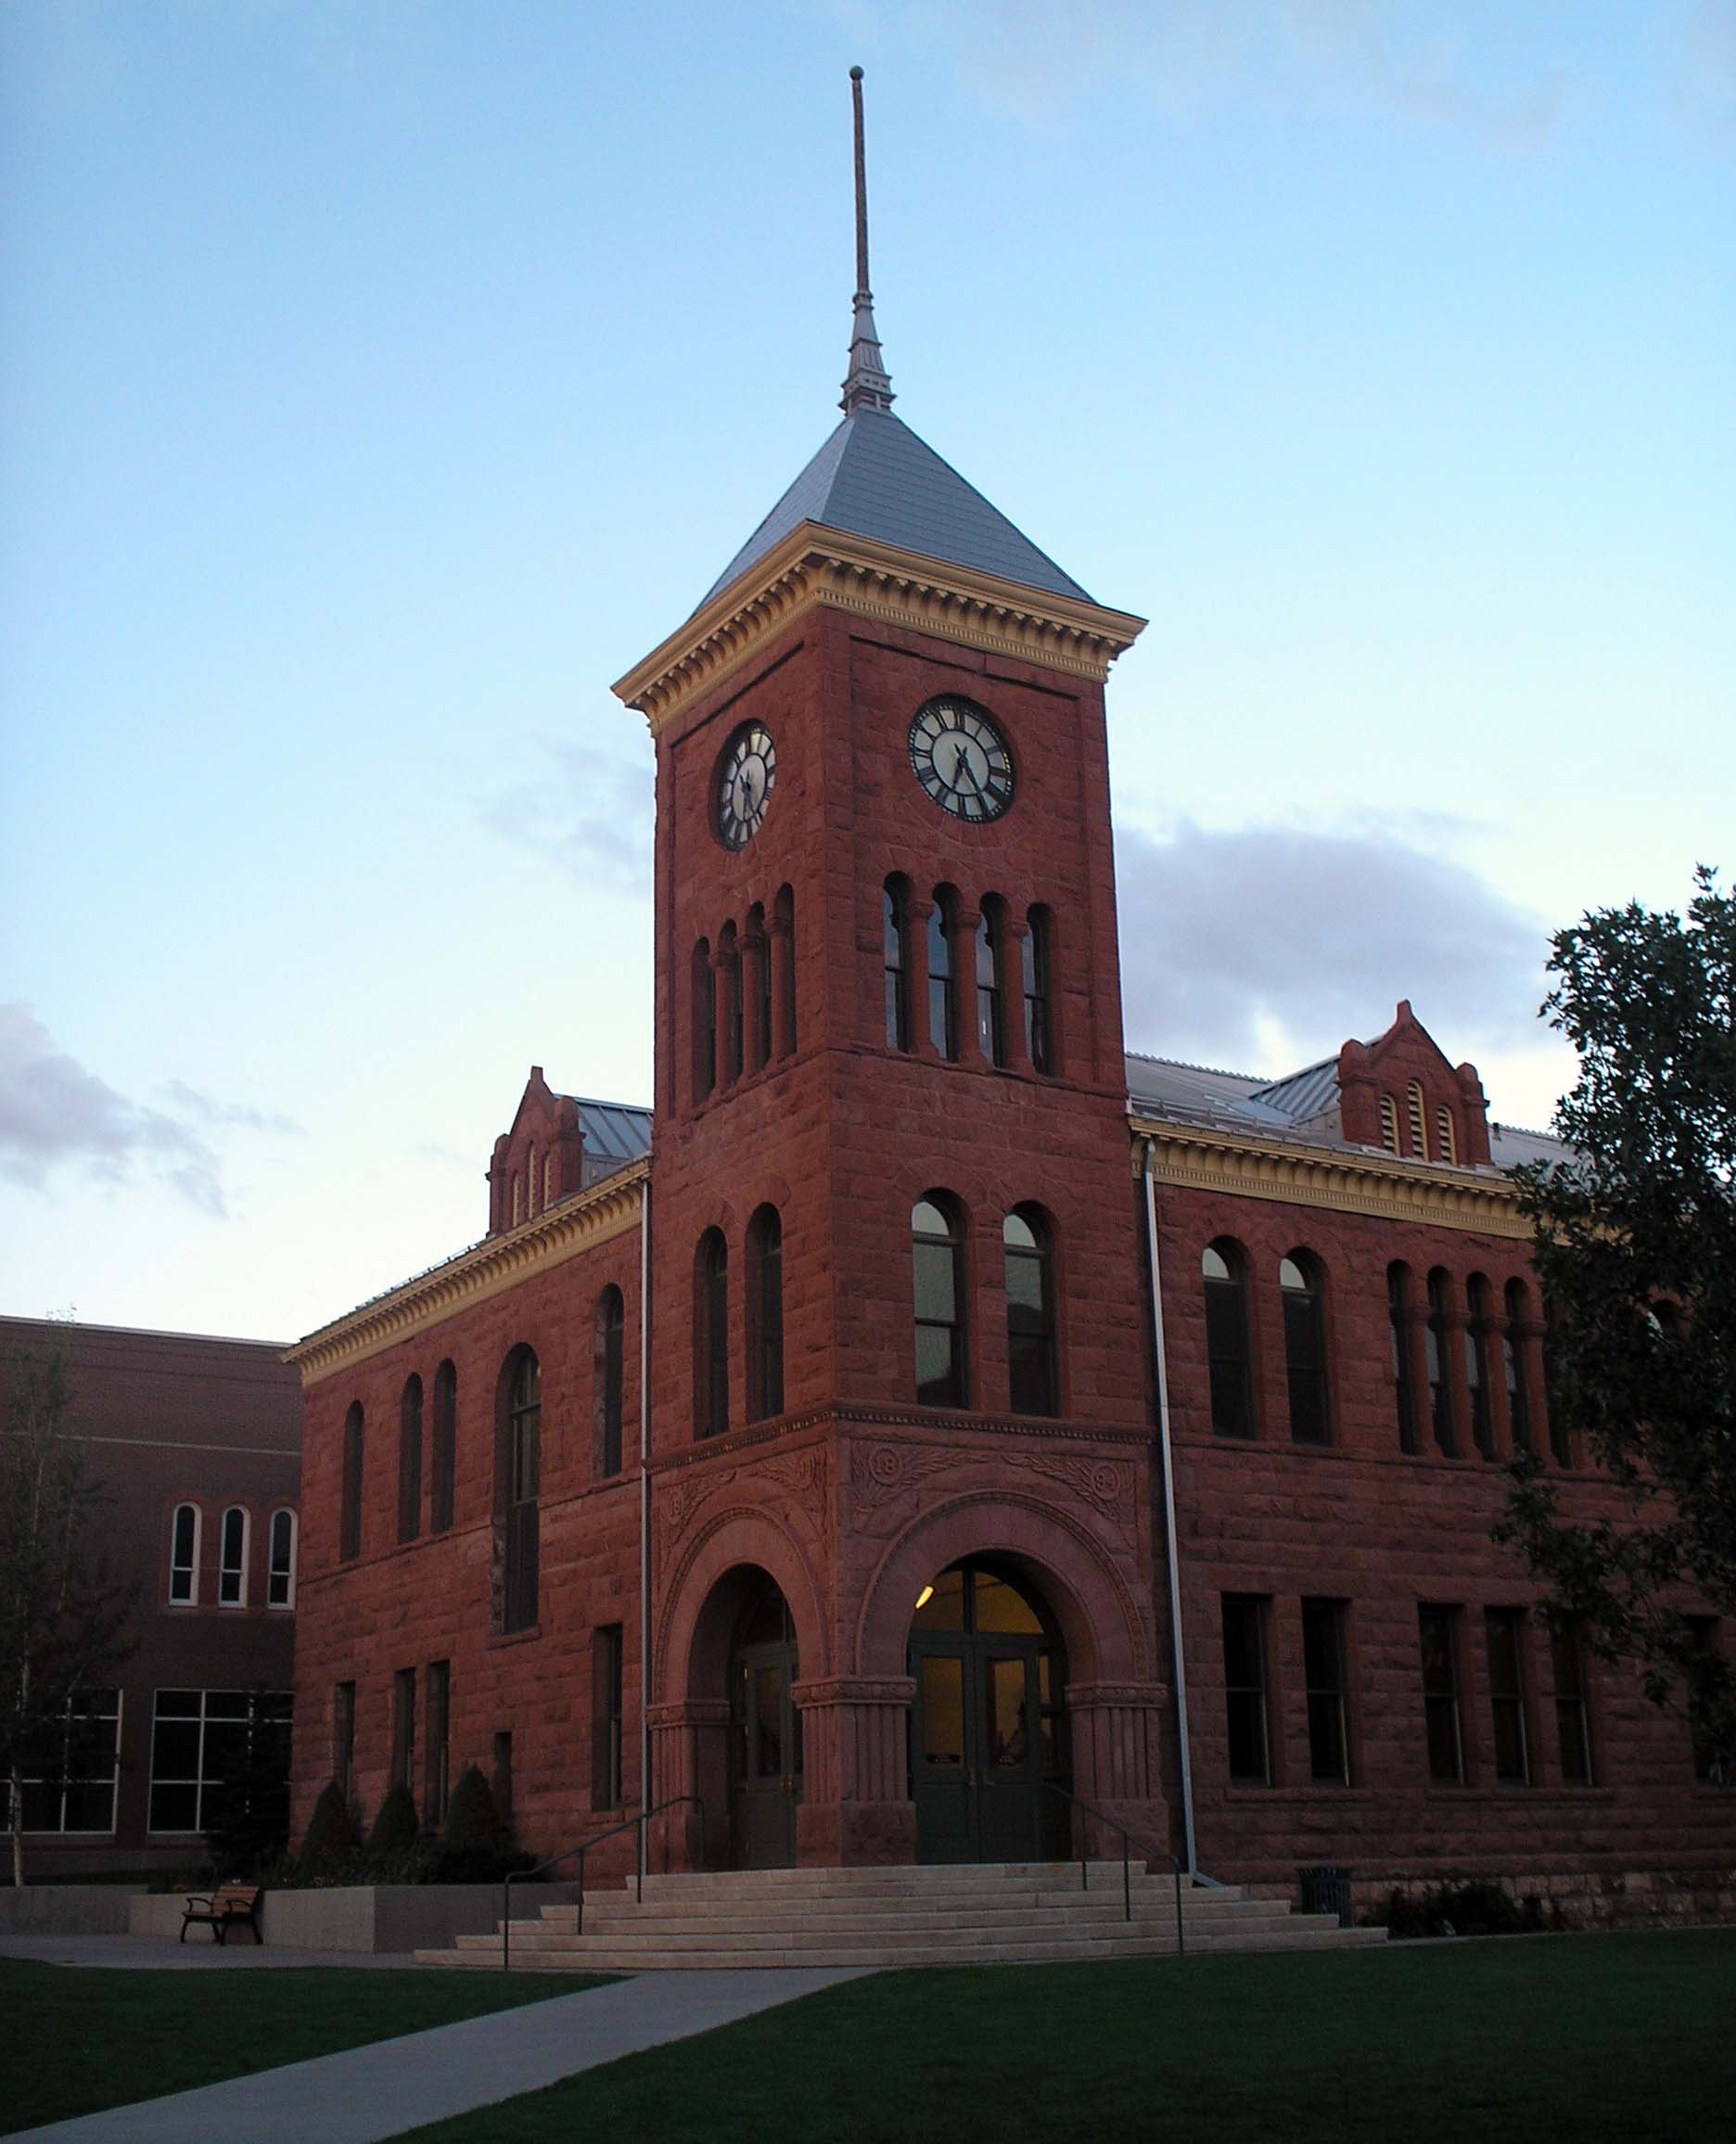 flagstaff courthouse.jpg